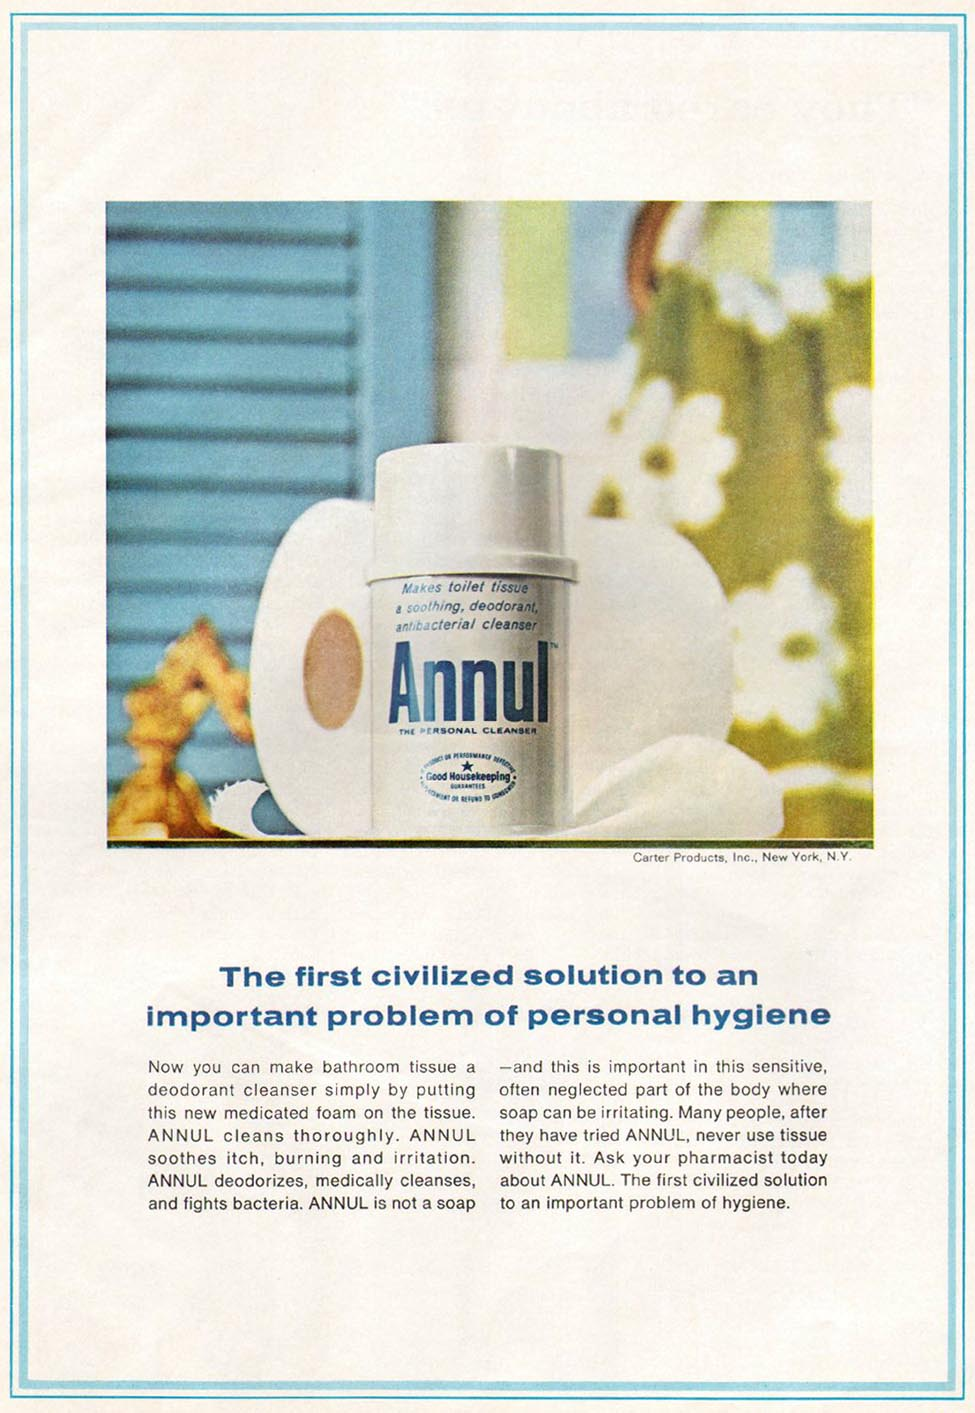 ANNUL PERSONAL CLEANSER GOOD HOUSEKEEPING 10/01/1965